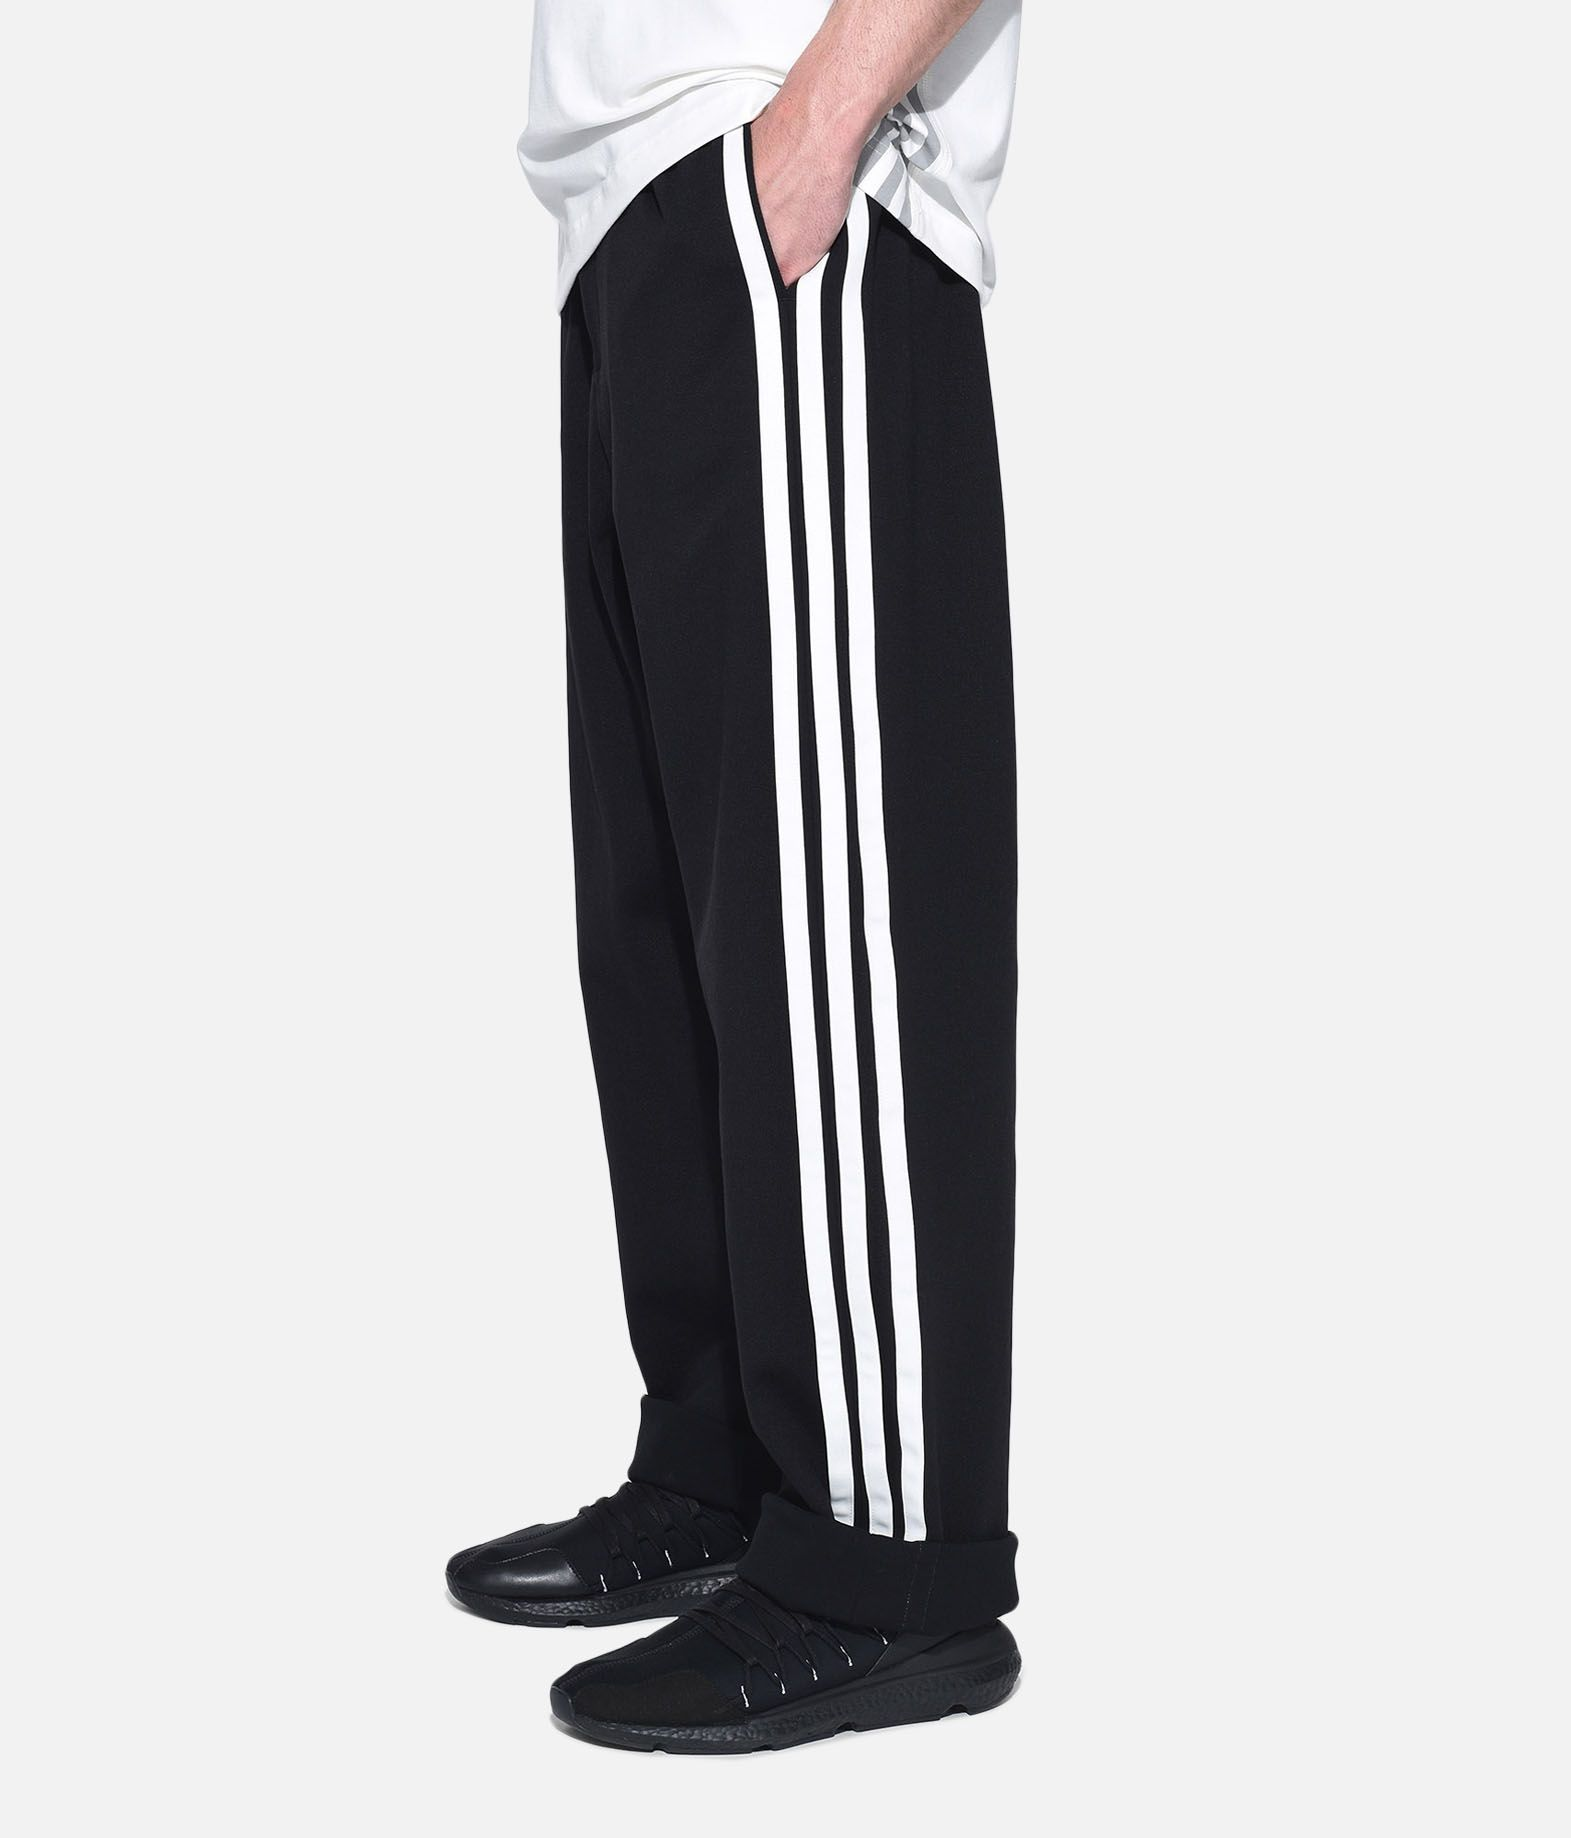 Y-3 Y-3 3-Stripes Selvedge Wide Pants Спортивные штаны Для Мужчин e